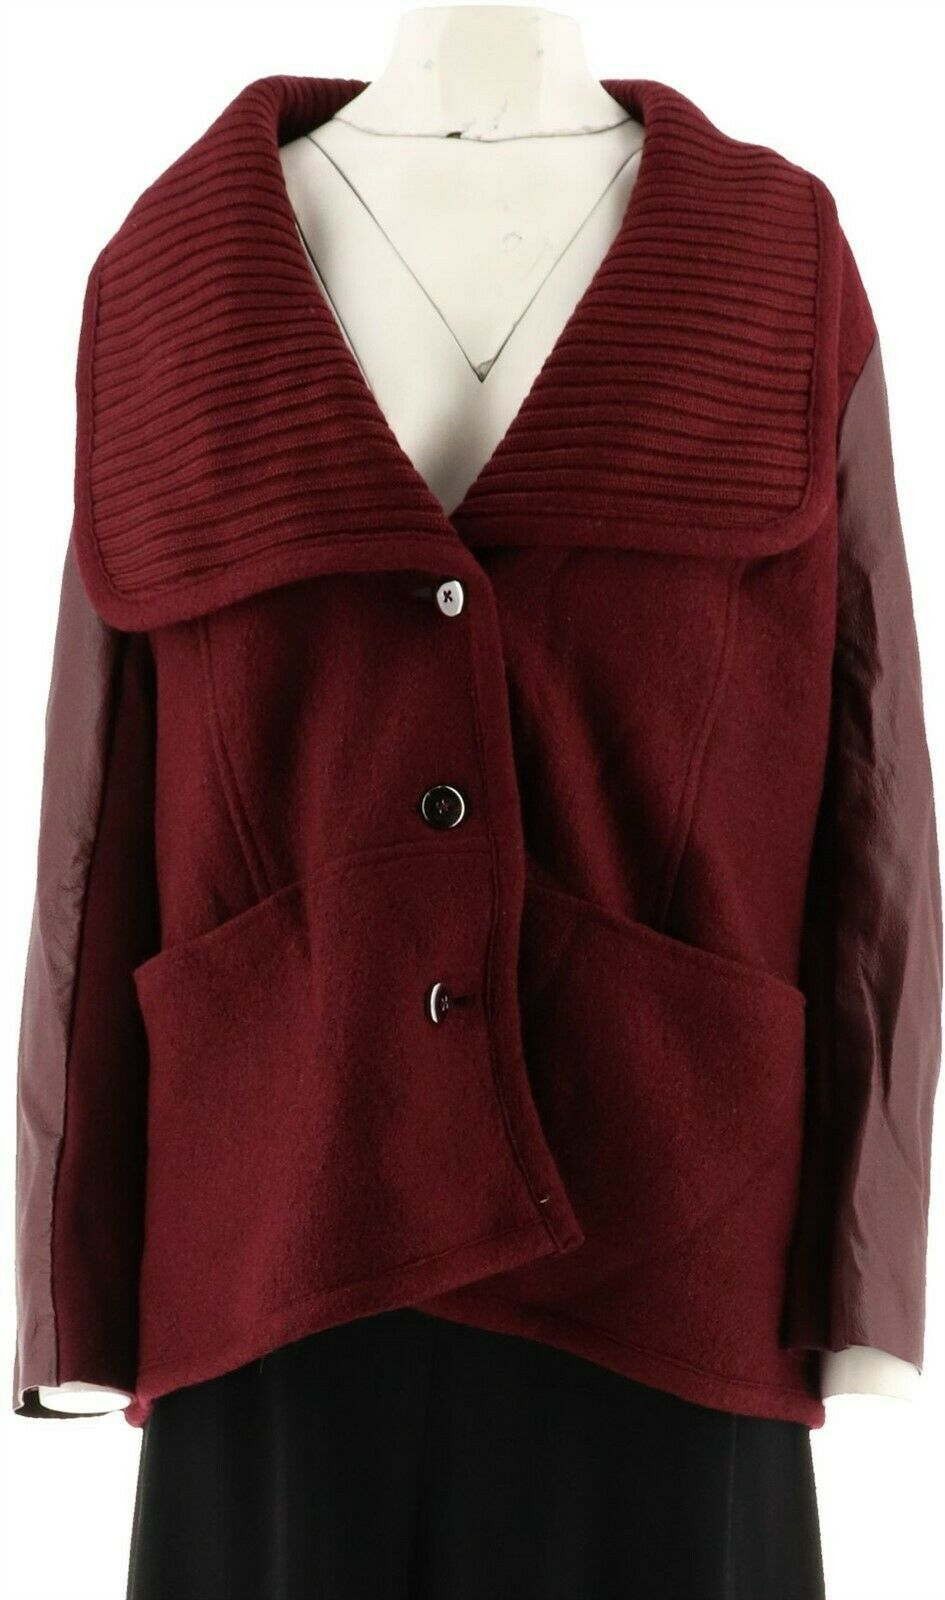 Primary image for Halston Casual Sweater Knit Collar Jacket Leather Slv Bordeaux 14 NEW A283888